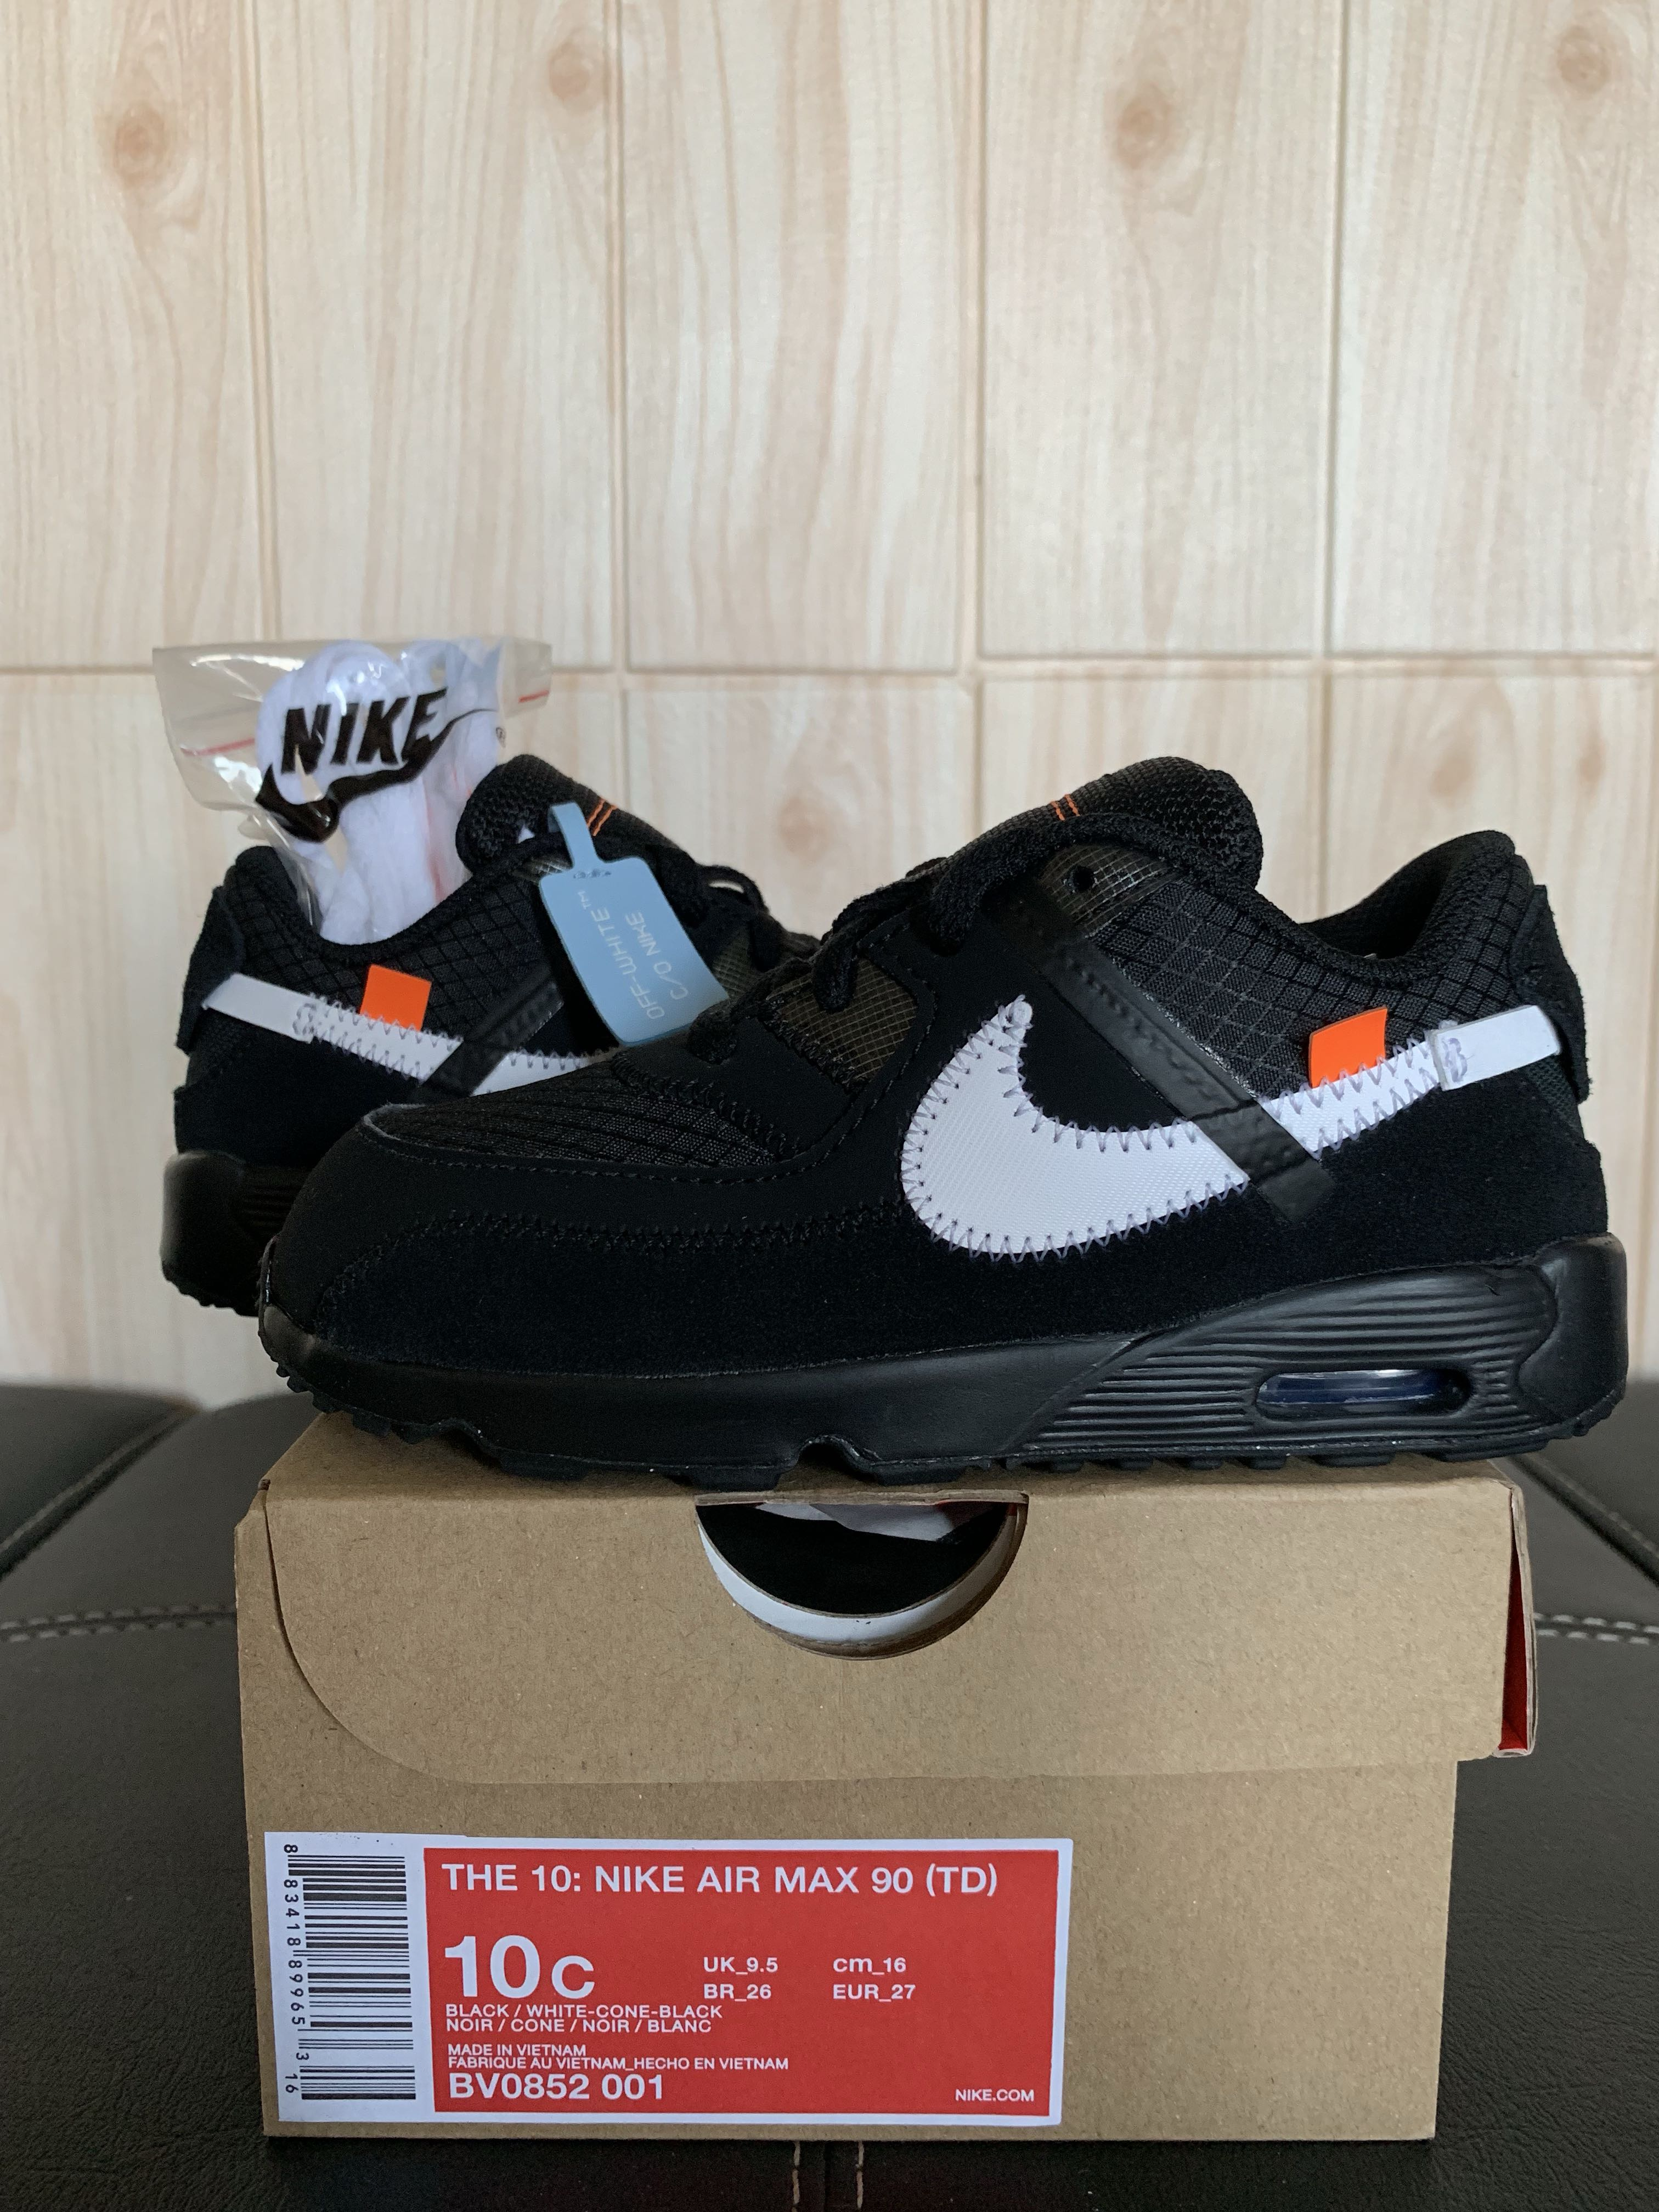 3d1011eb OFF-WHITE AIR MAX 90 (TD) 10C, Men's Fashion, Footwear, Sneakers on  Carousell